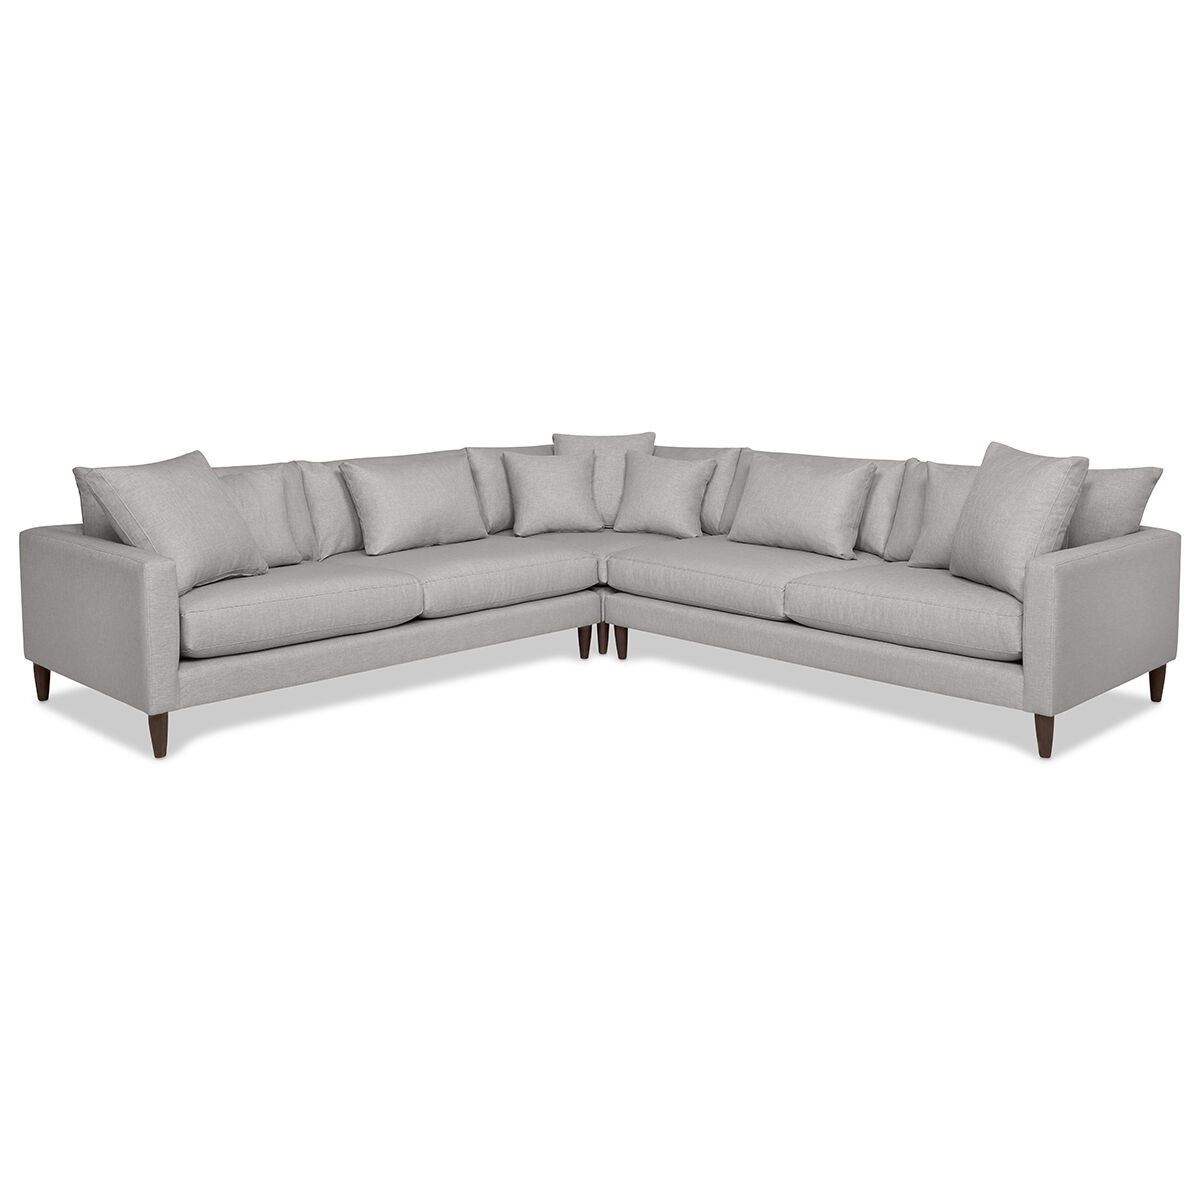 Fabric Sectional Sofas Canada Nixon Custom Sectional